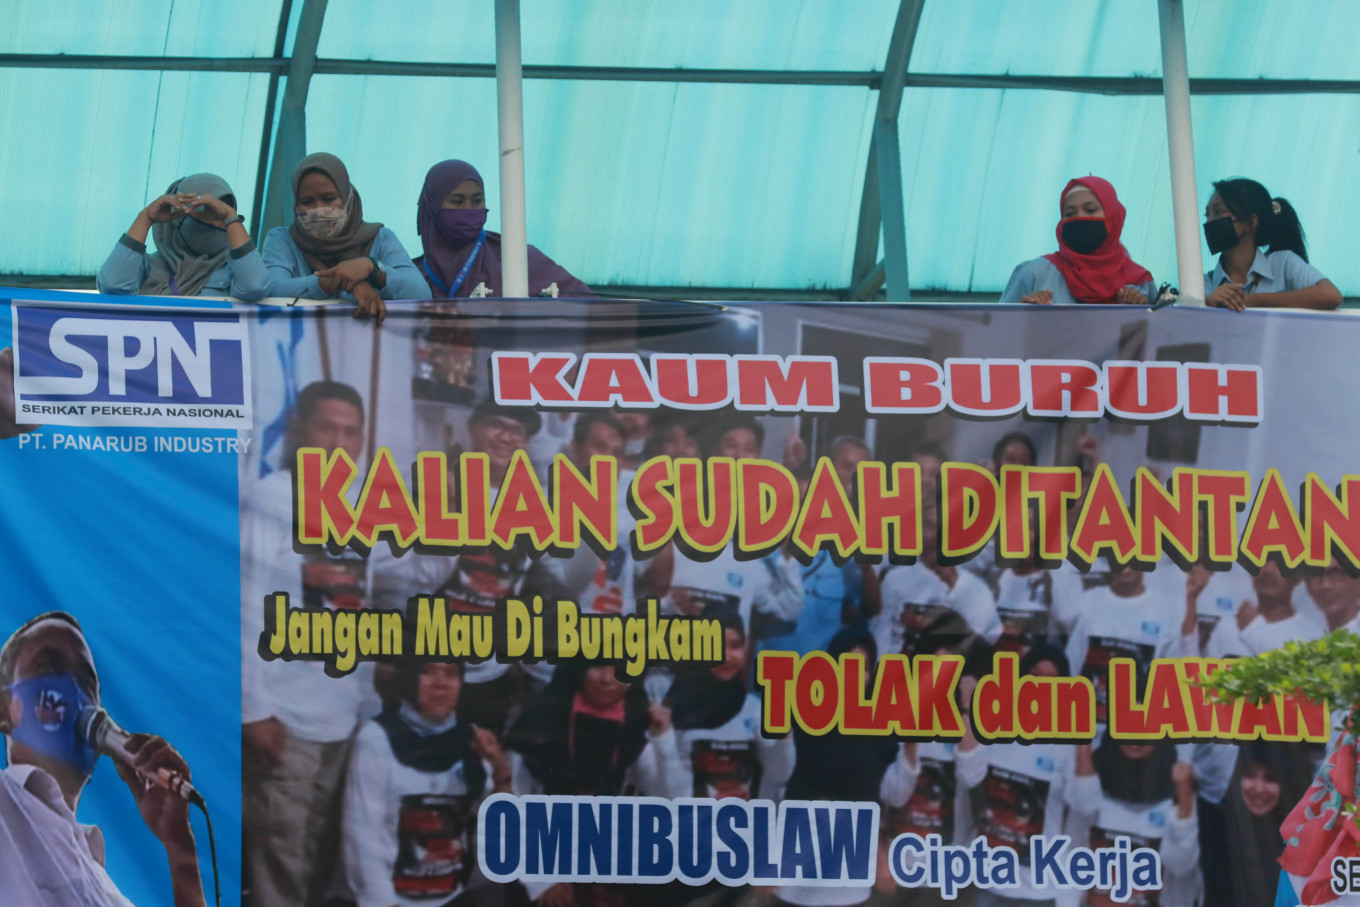 "Putting their foot down: Members of a factory union stand behind a banner protesting the recently passed omnibus bill on job creation during a strike on Wednesday, October 7.2020 at the sports footwear factory of PT Panarub Industry in Tangerang. The banner calls on workers to answer to the ""challenge"": ""Don't let them silence you. Reject and challenge the omnibus law on job creation."" JP/Dhoni Setiawan"